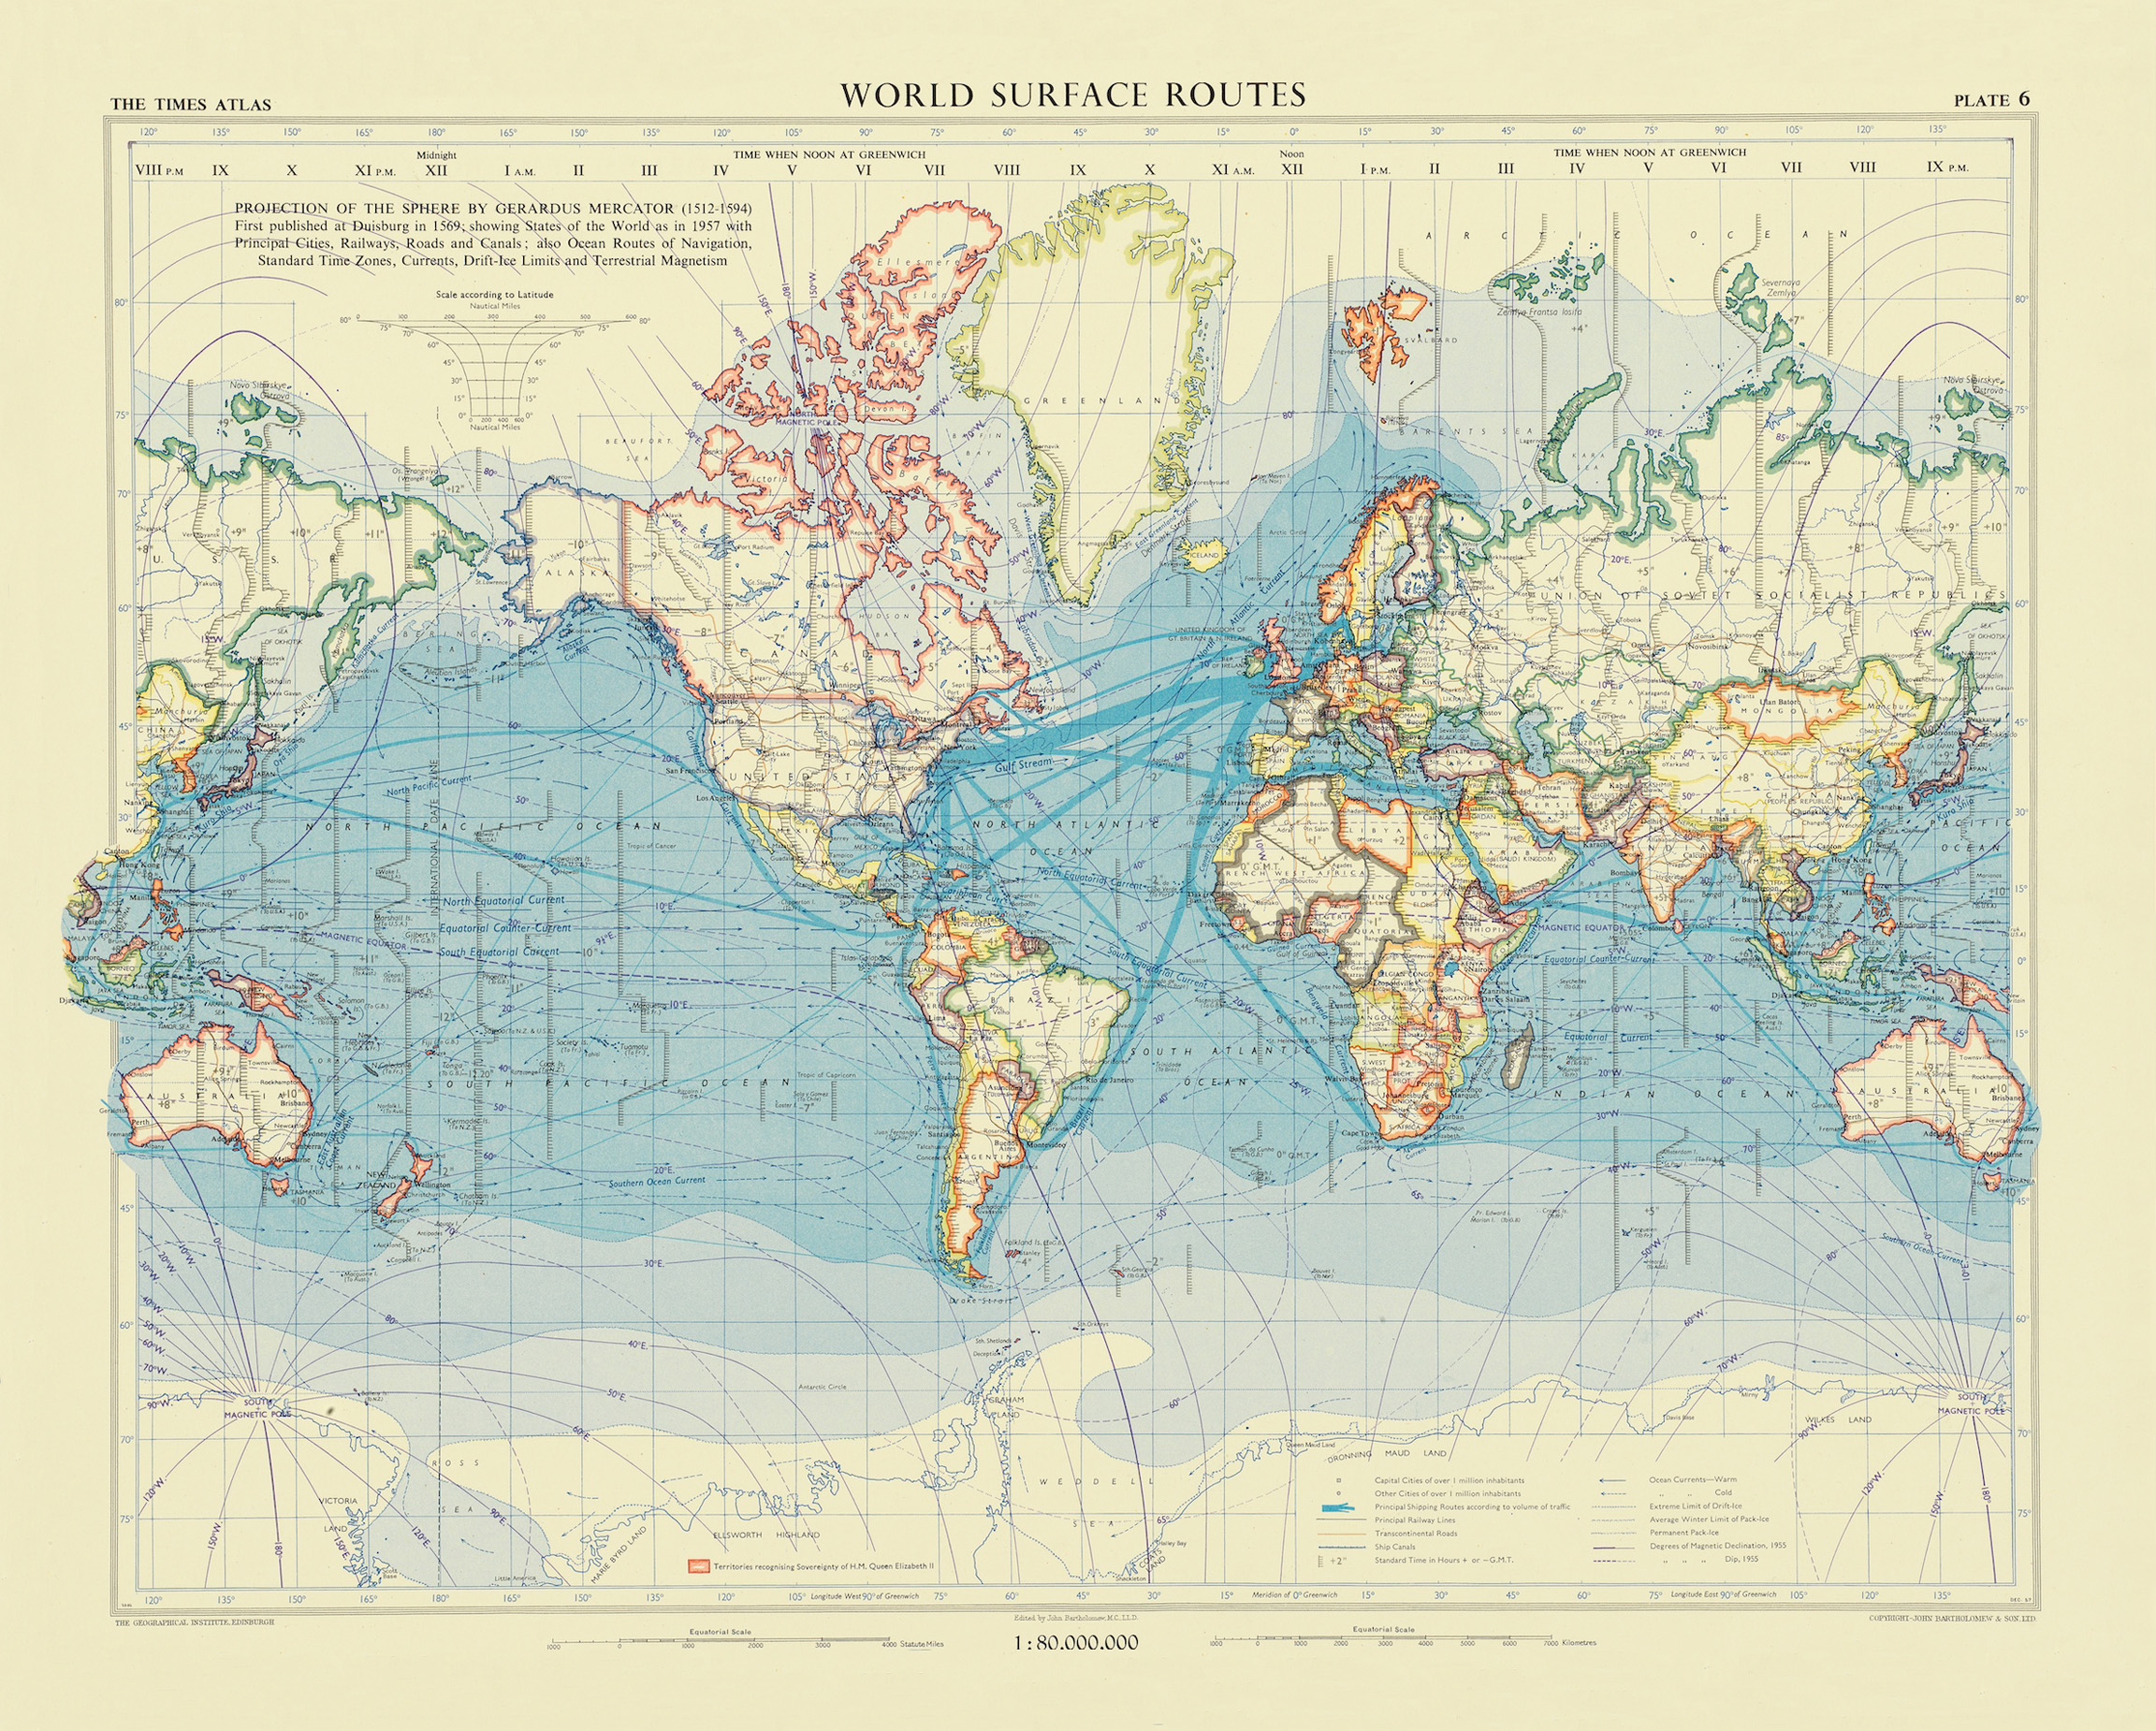 World Surface Routes